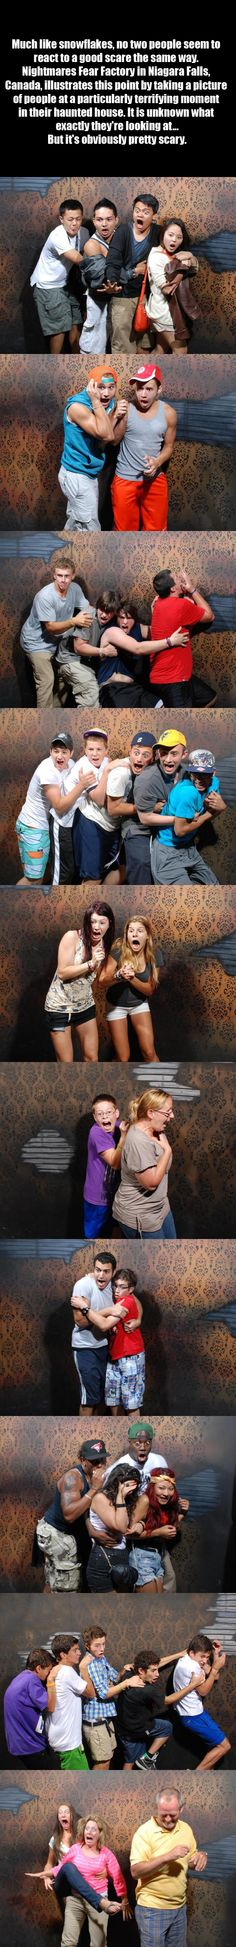 This is HILARIOUS ! most of the guys look more scared then girls haha